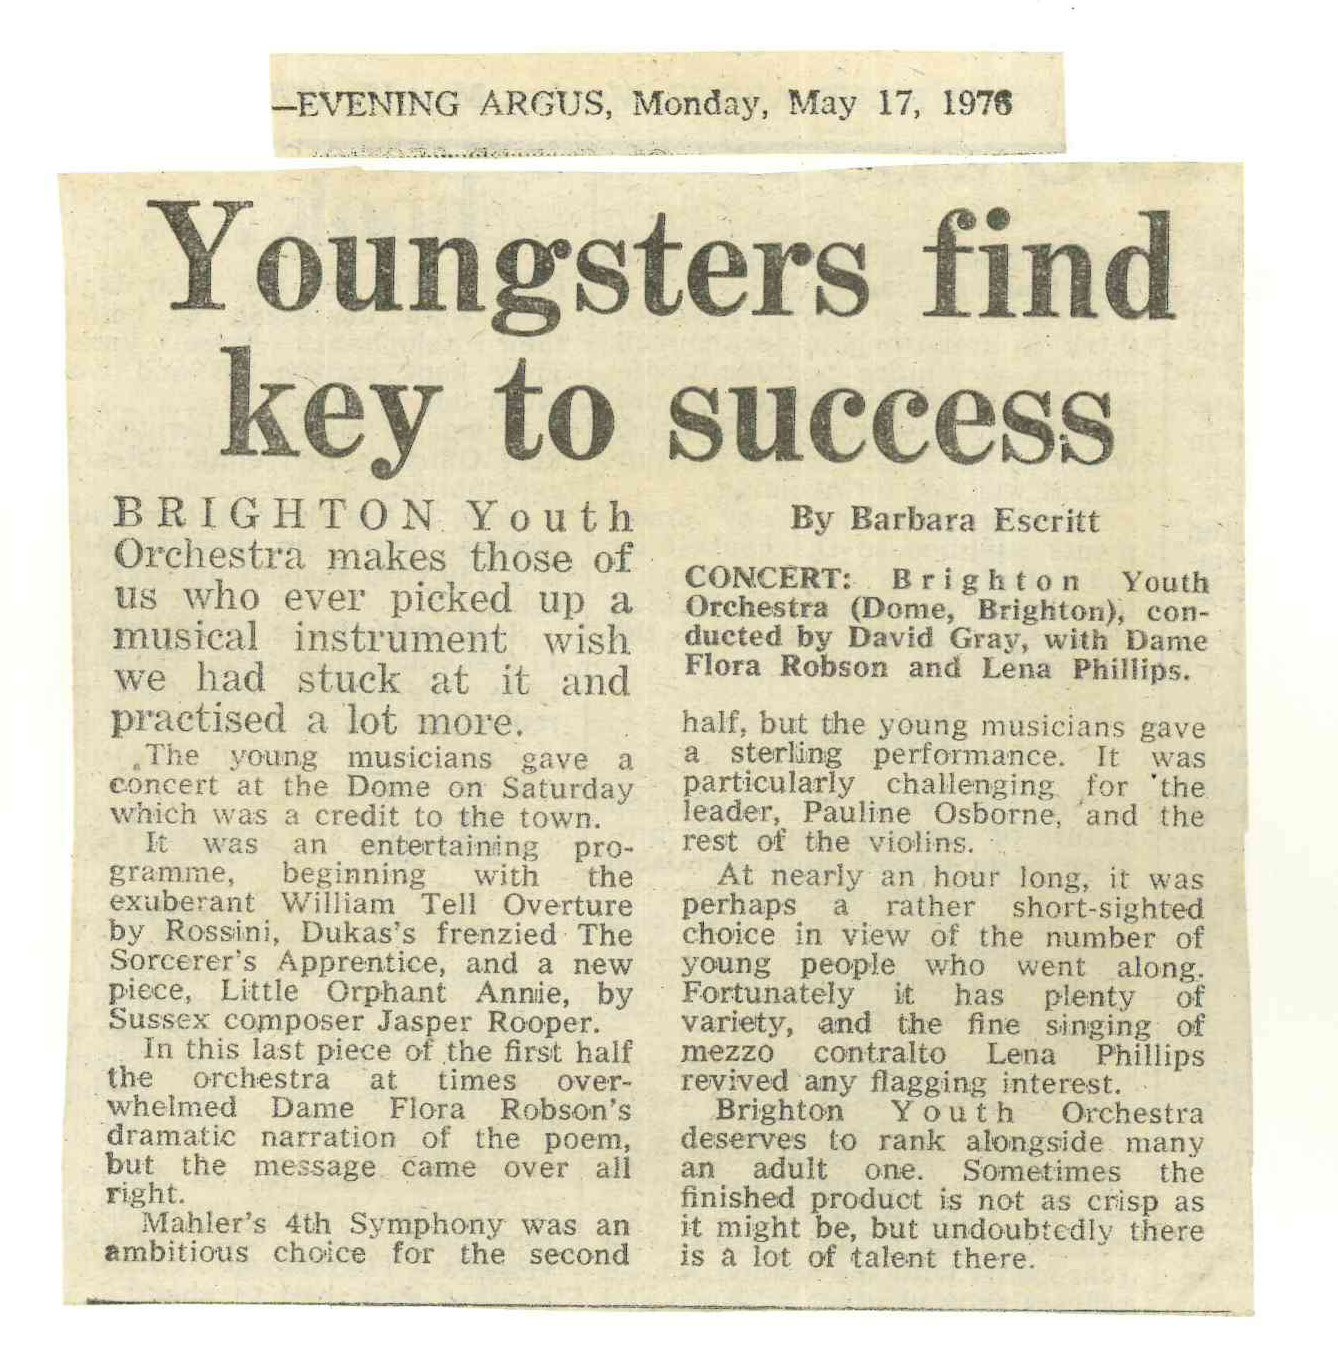 00040-Evening Argus, 17th May 1976.jpg